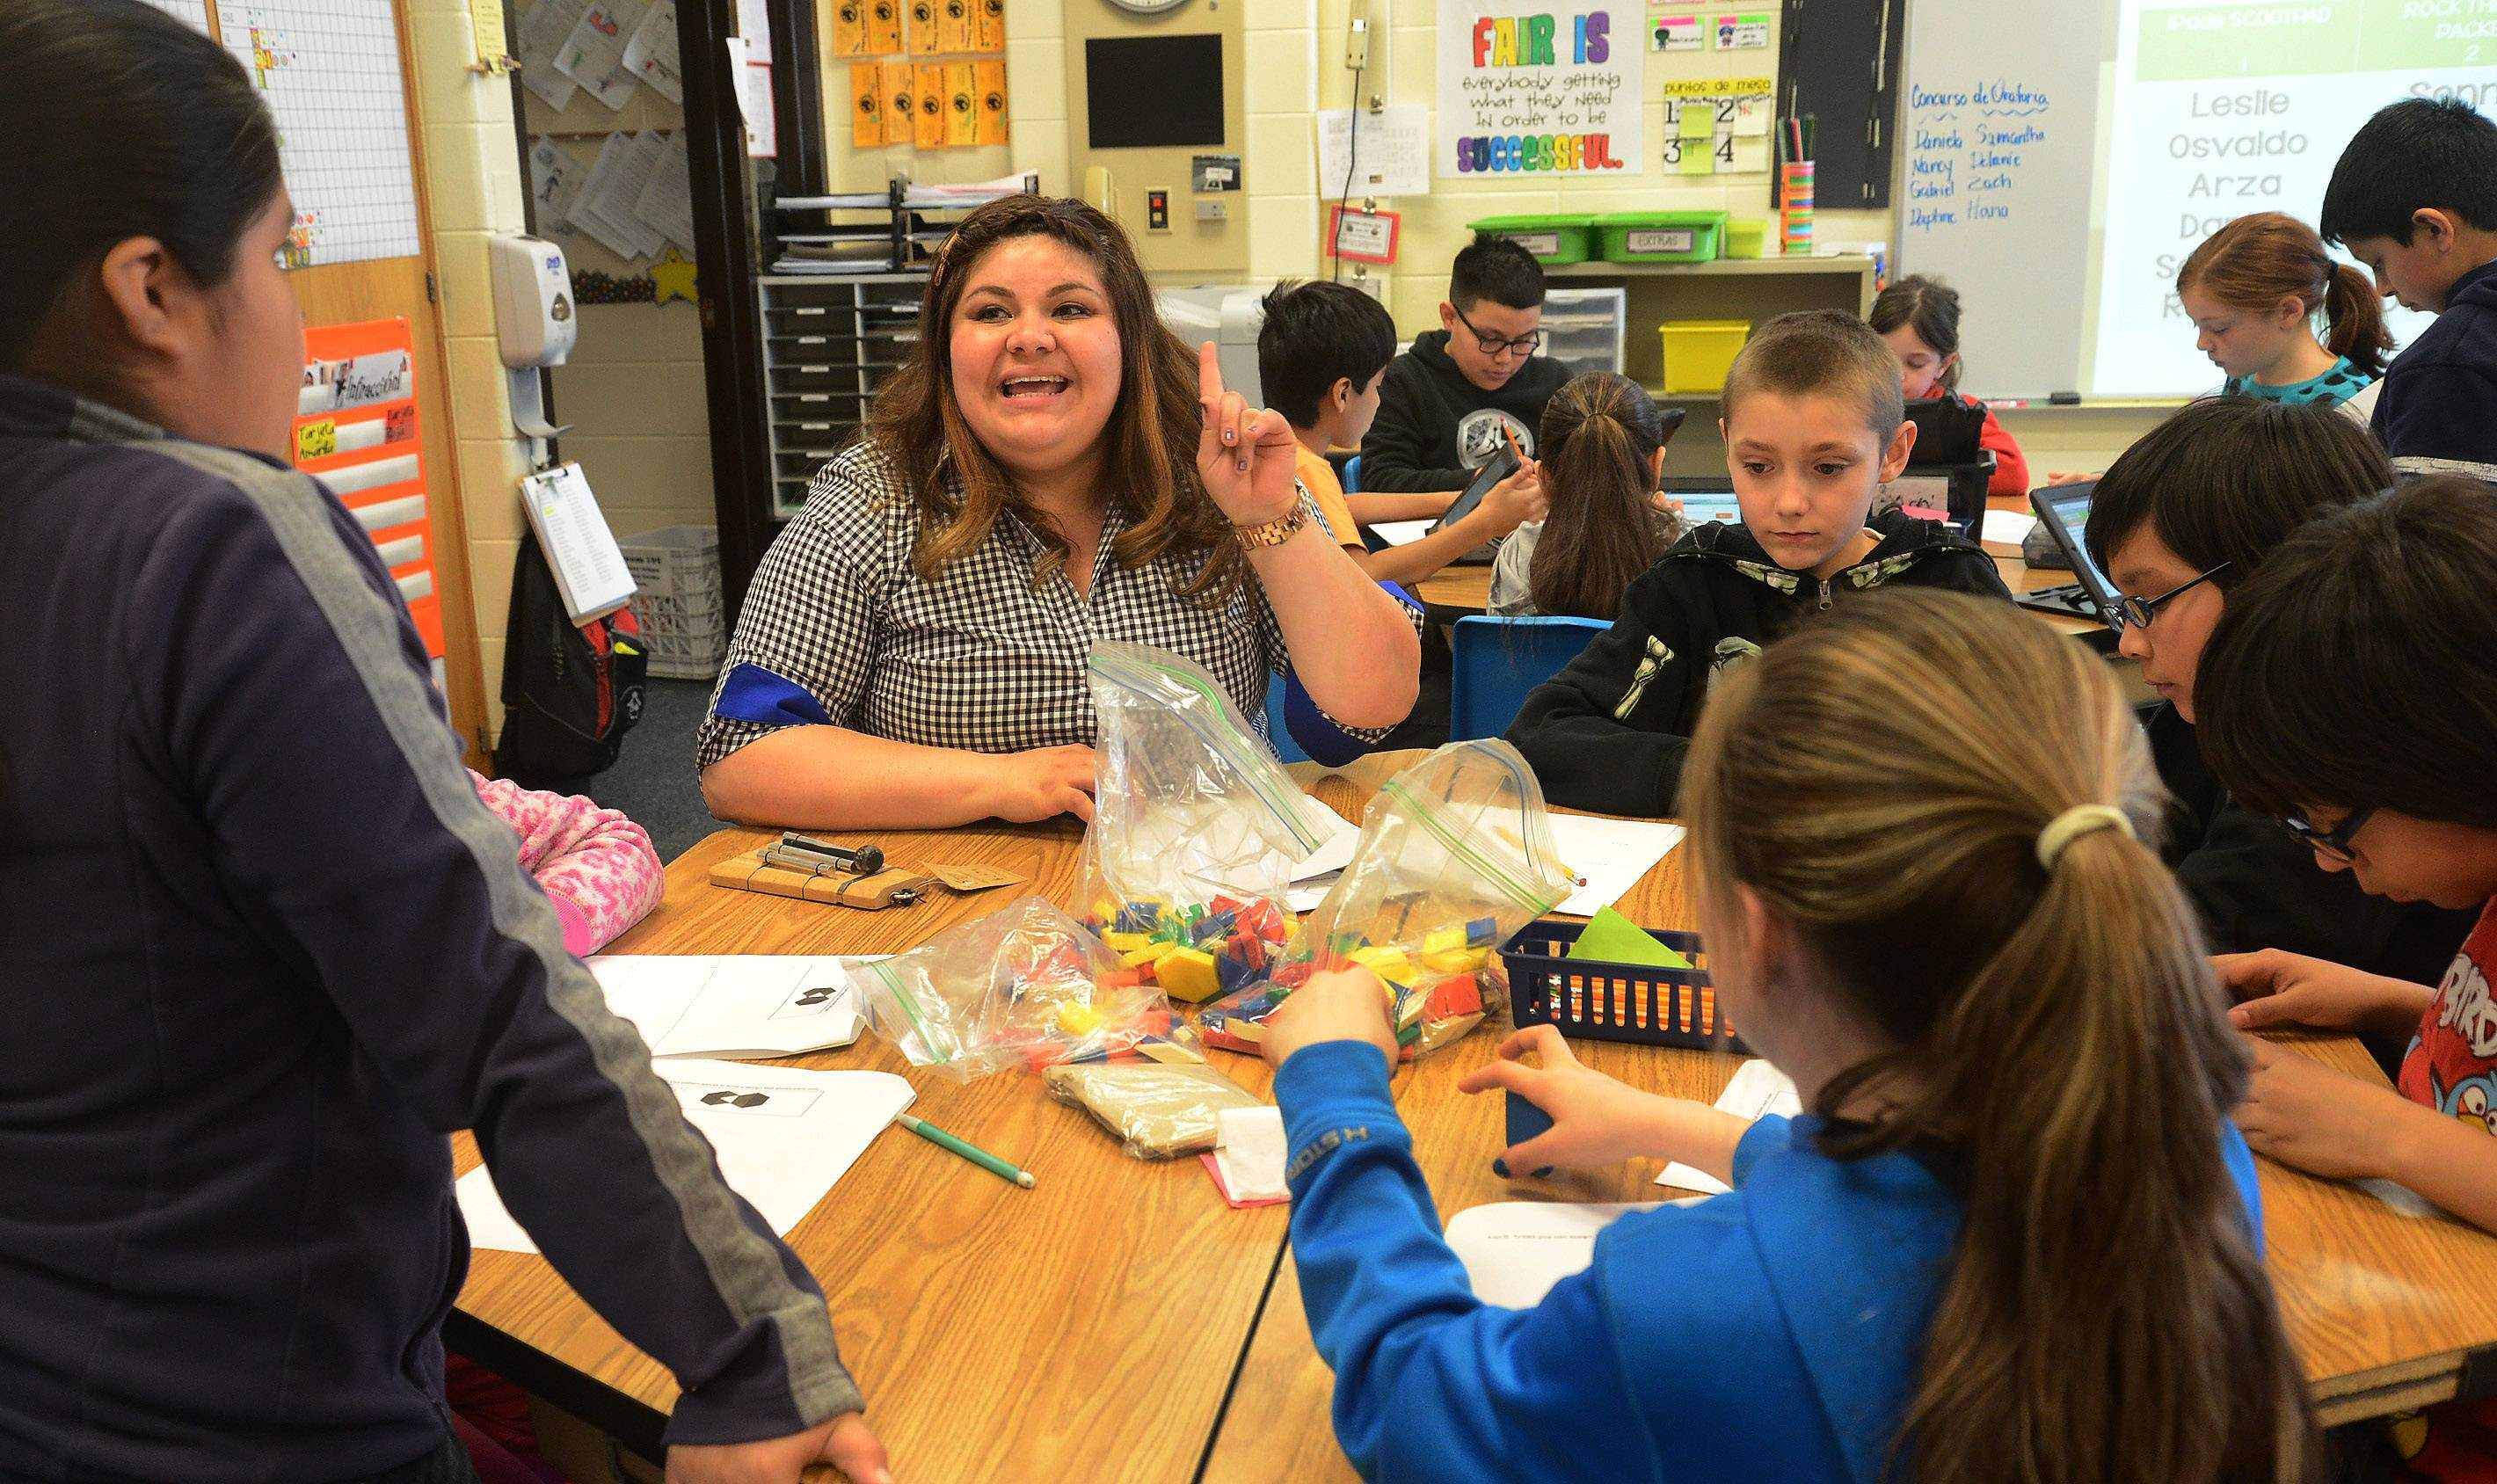 Her colleagues praise dual-language teacher Sonia Esquivel for the enthusiasm she brings, and her ability to get young students interested in science and math.